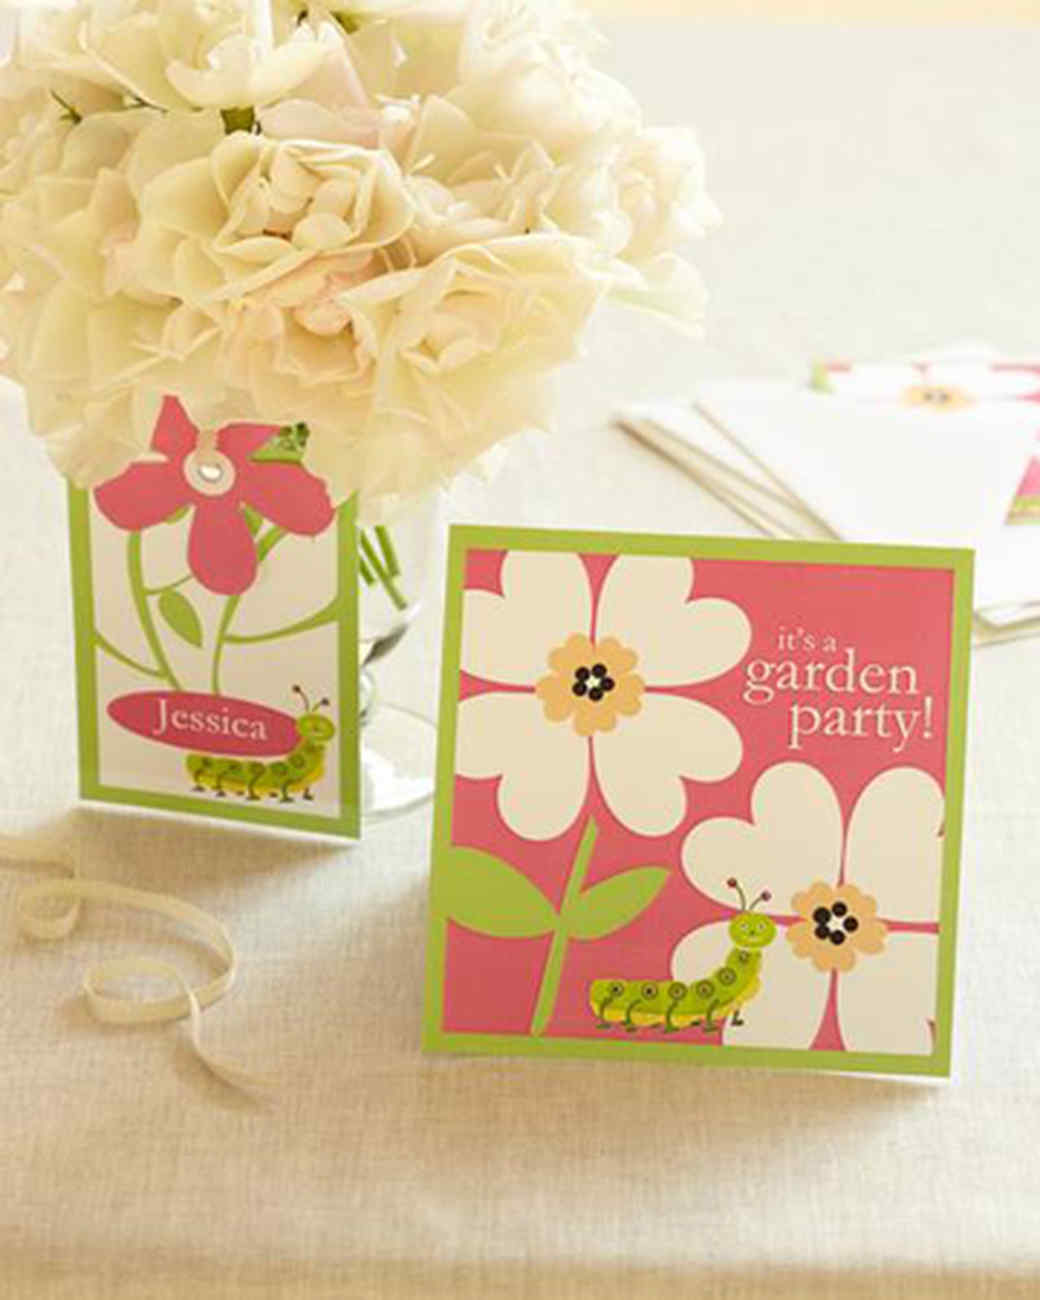 microsoft office custom templates martha stewart microsoft office 2010 custom templates 1 of 15